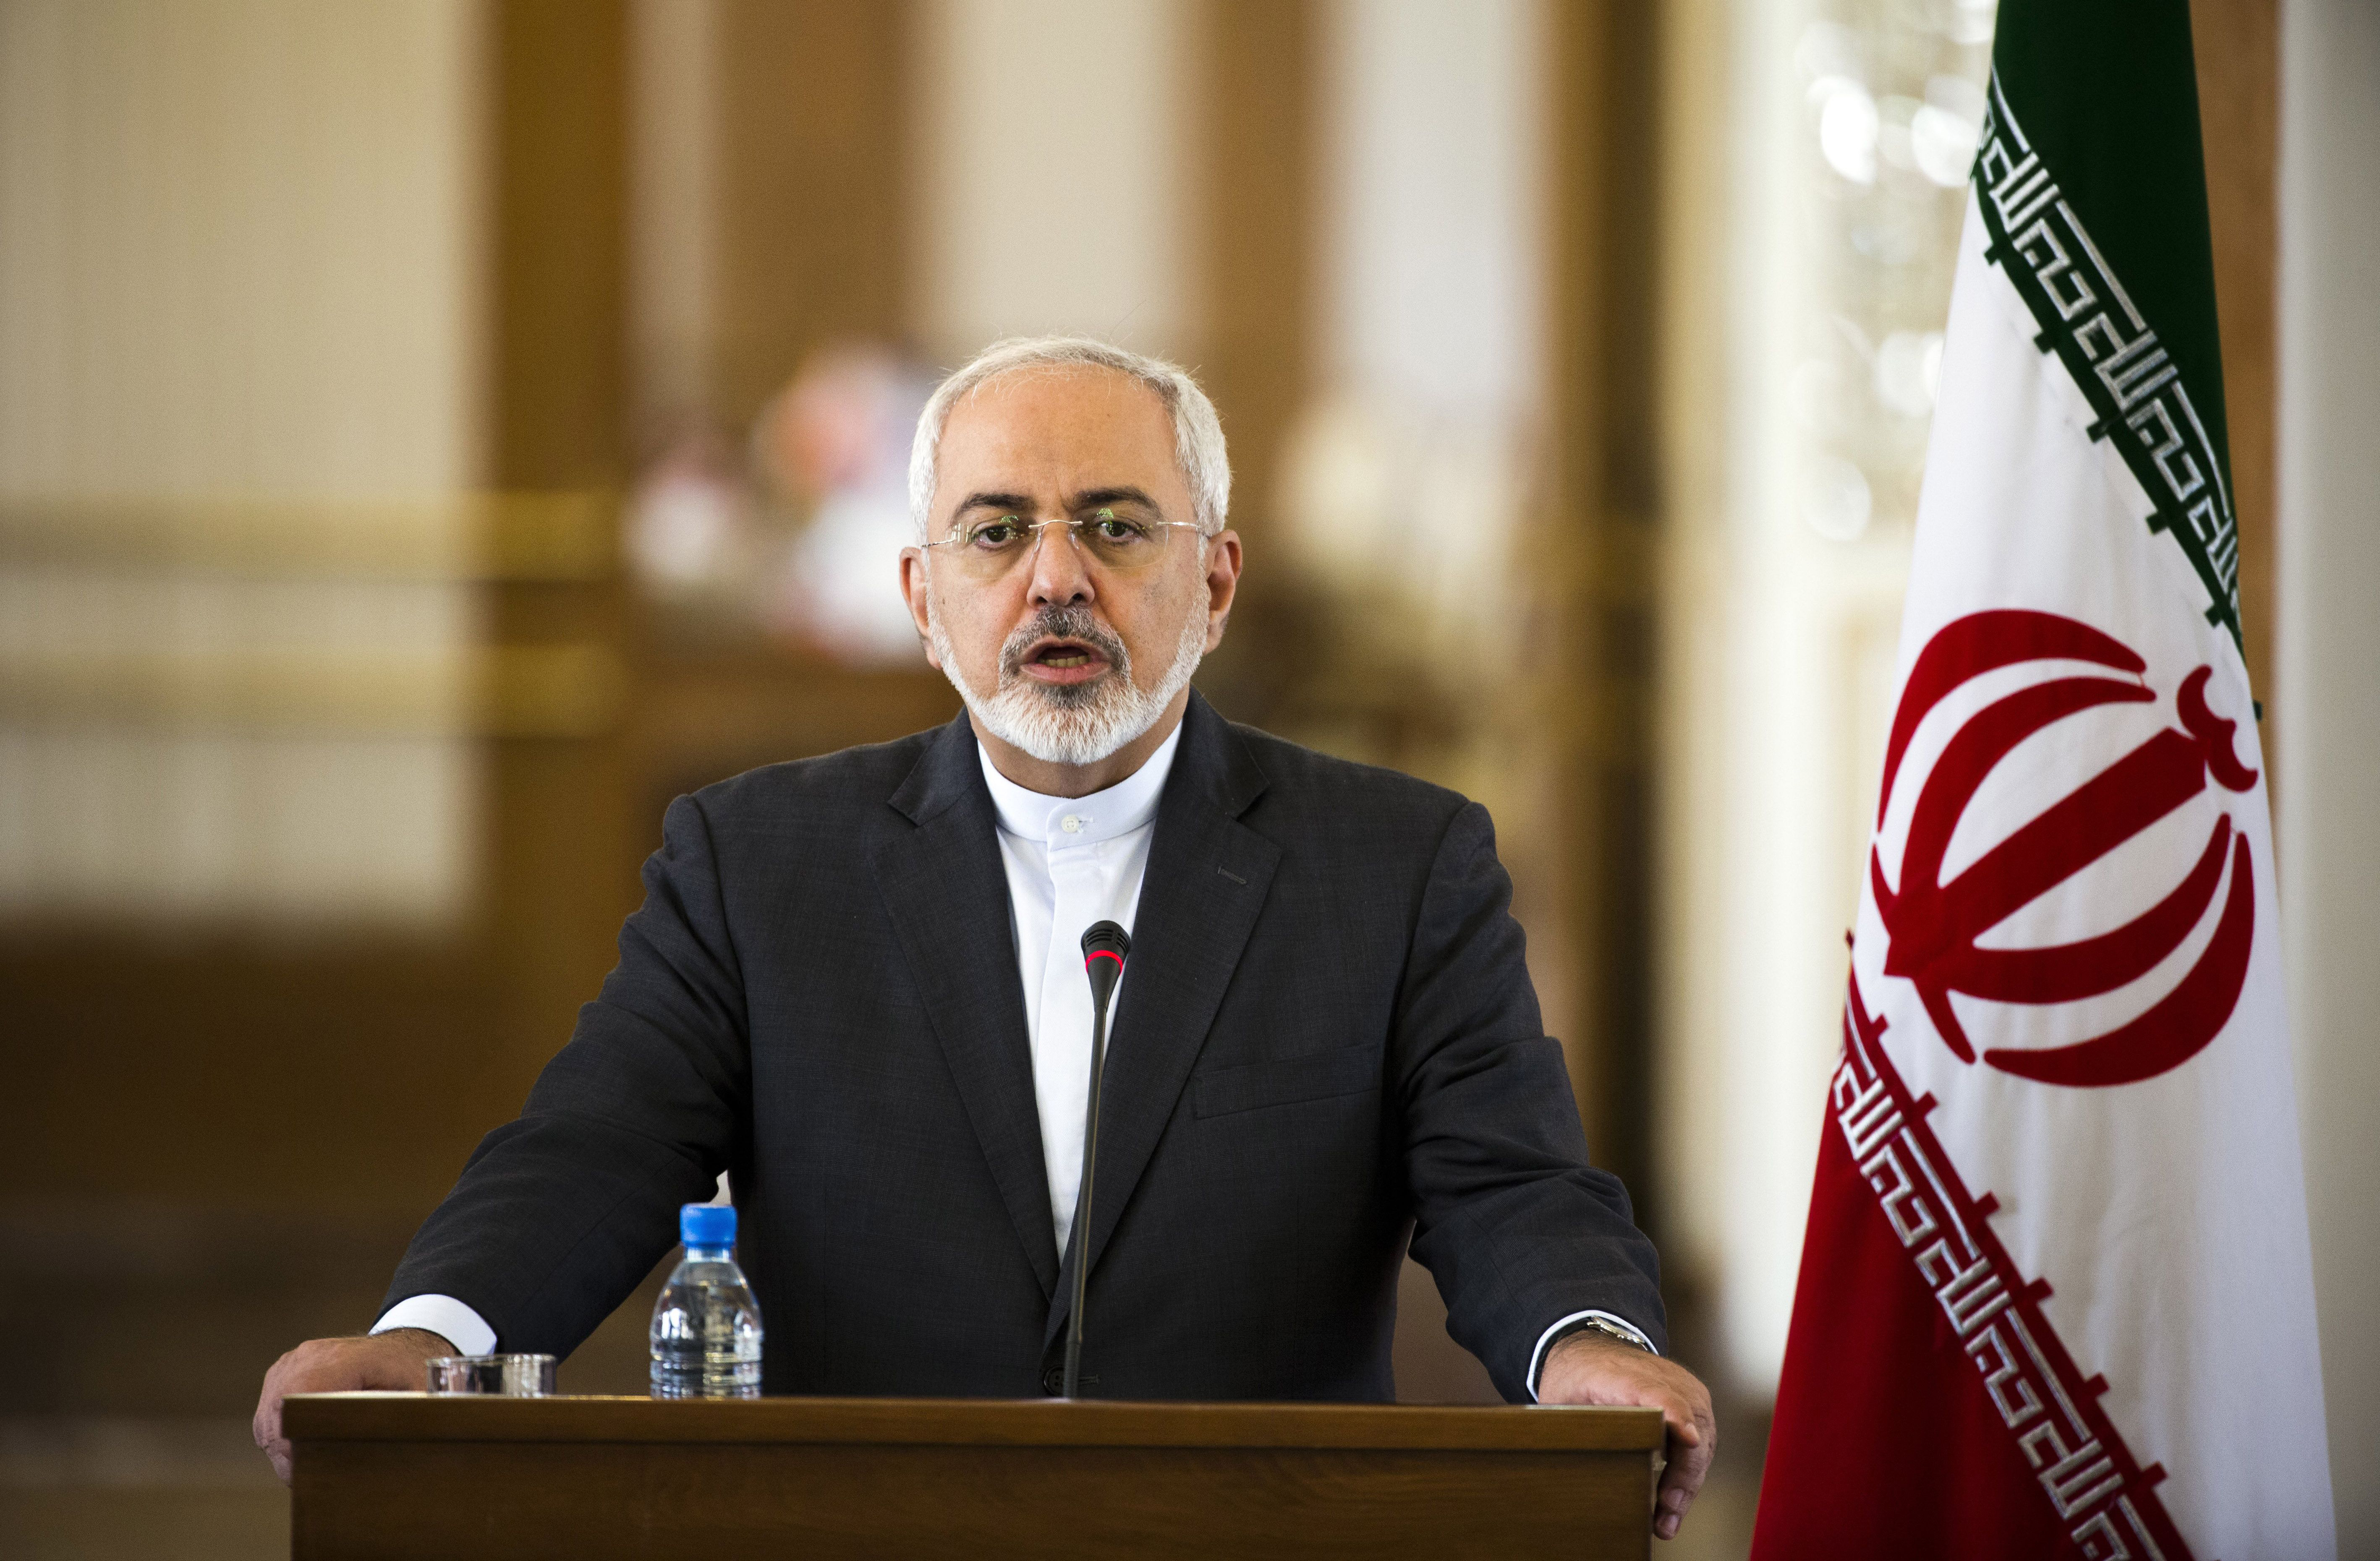 Iranian Foreign Minister Mohammad Javad Zarif speaks during a joint press conference with his French counterpart Laurent Fabius following their talks in Tehran on July 29, 2015.